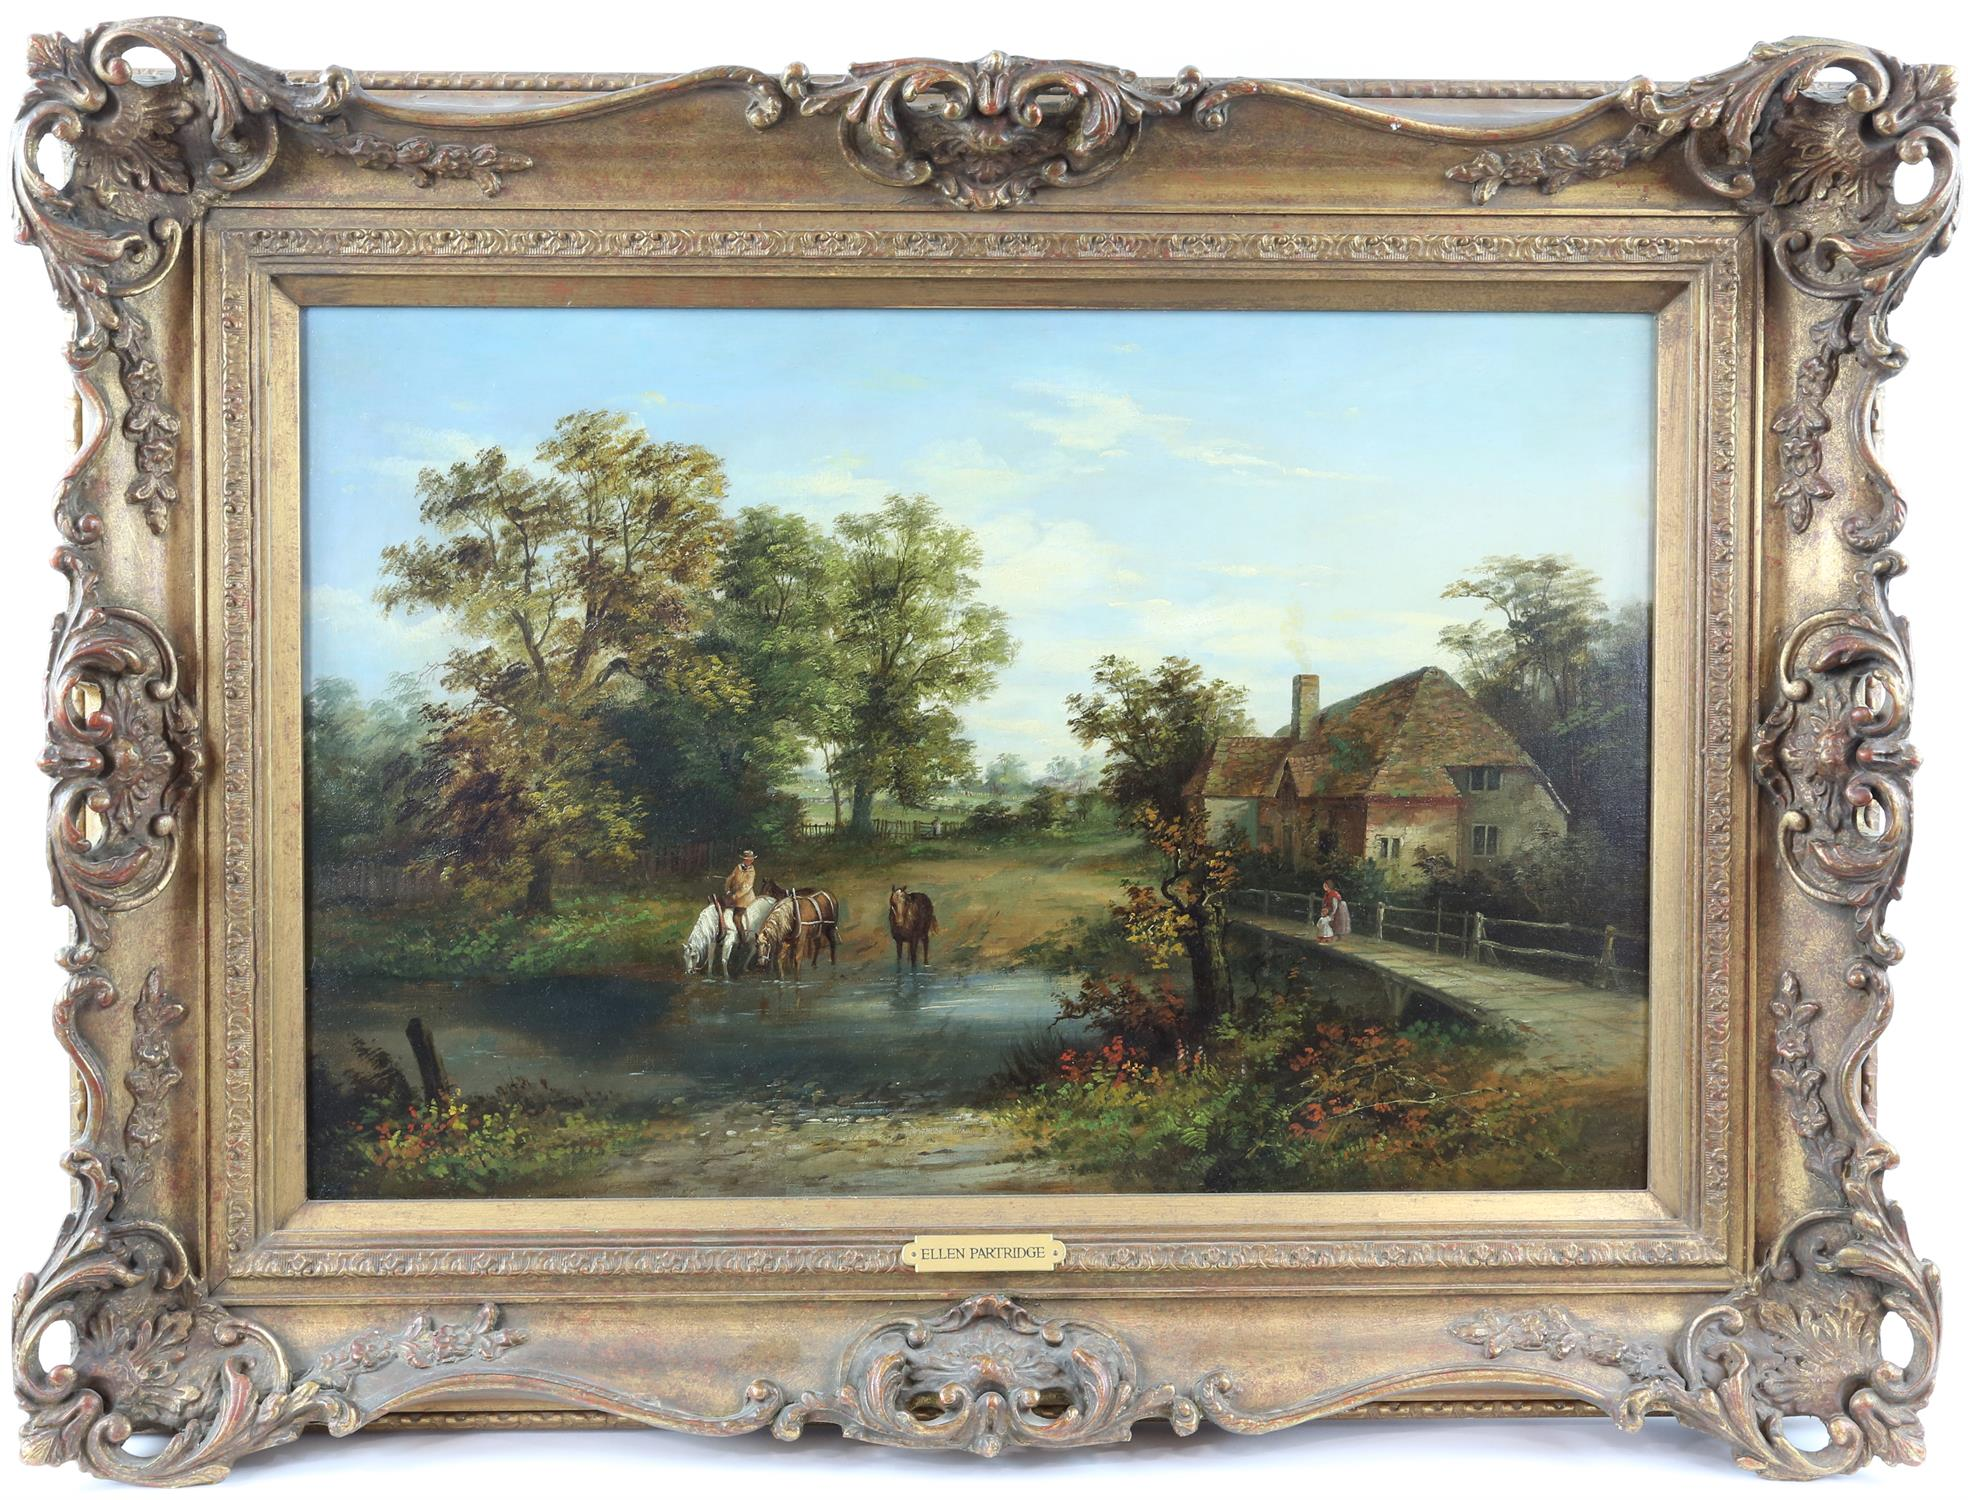 Ellen Partridge, British act. c. 1844 - c.1894, watering horses at a ford, signed, oil on canvas, - Image 2 of 3